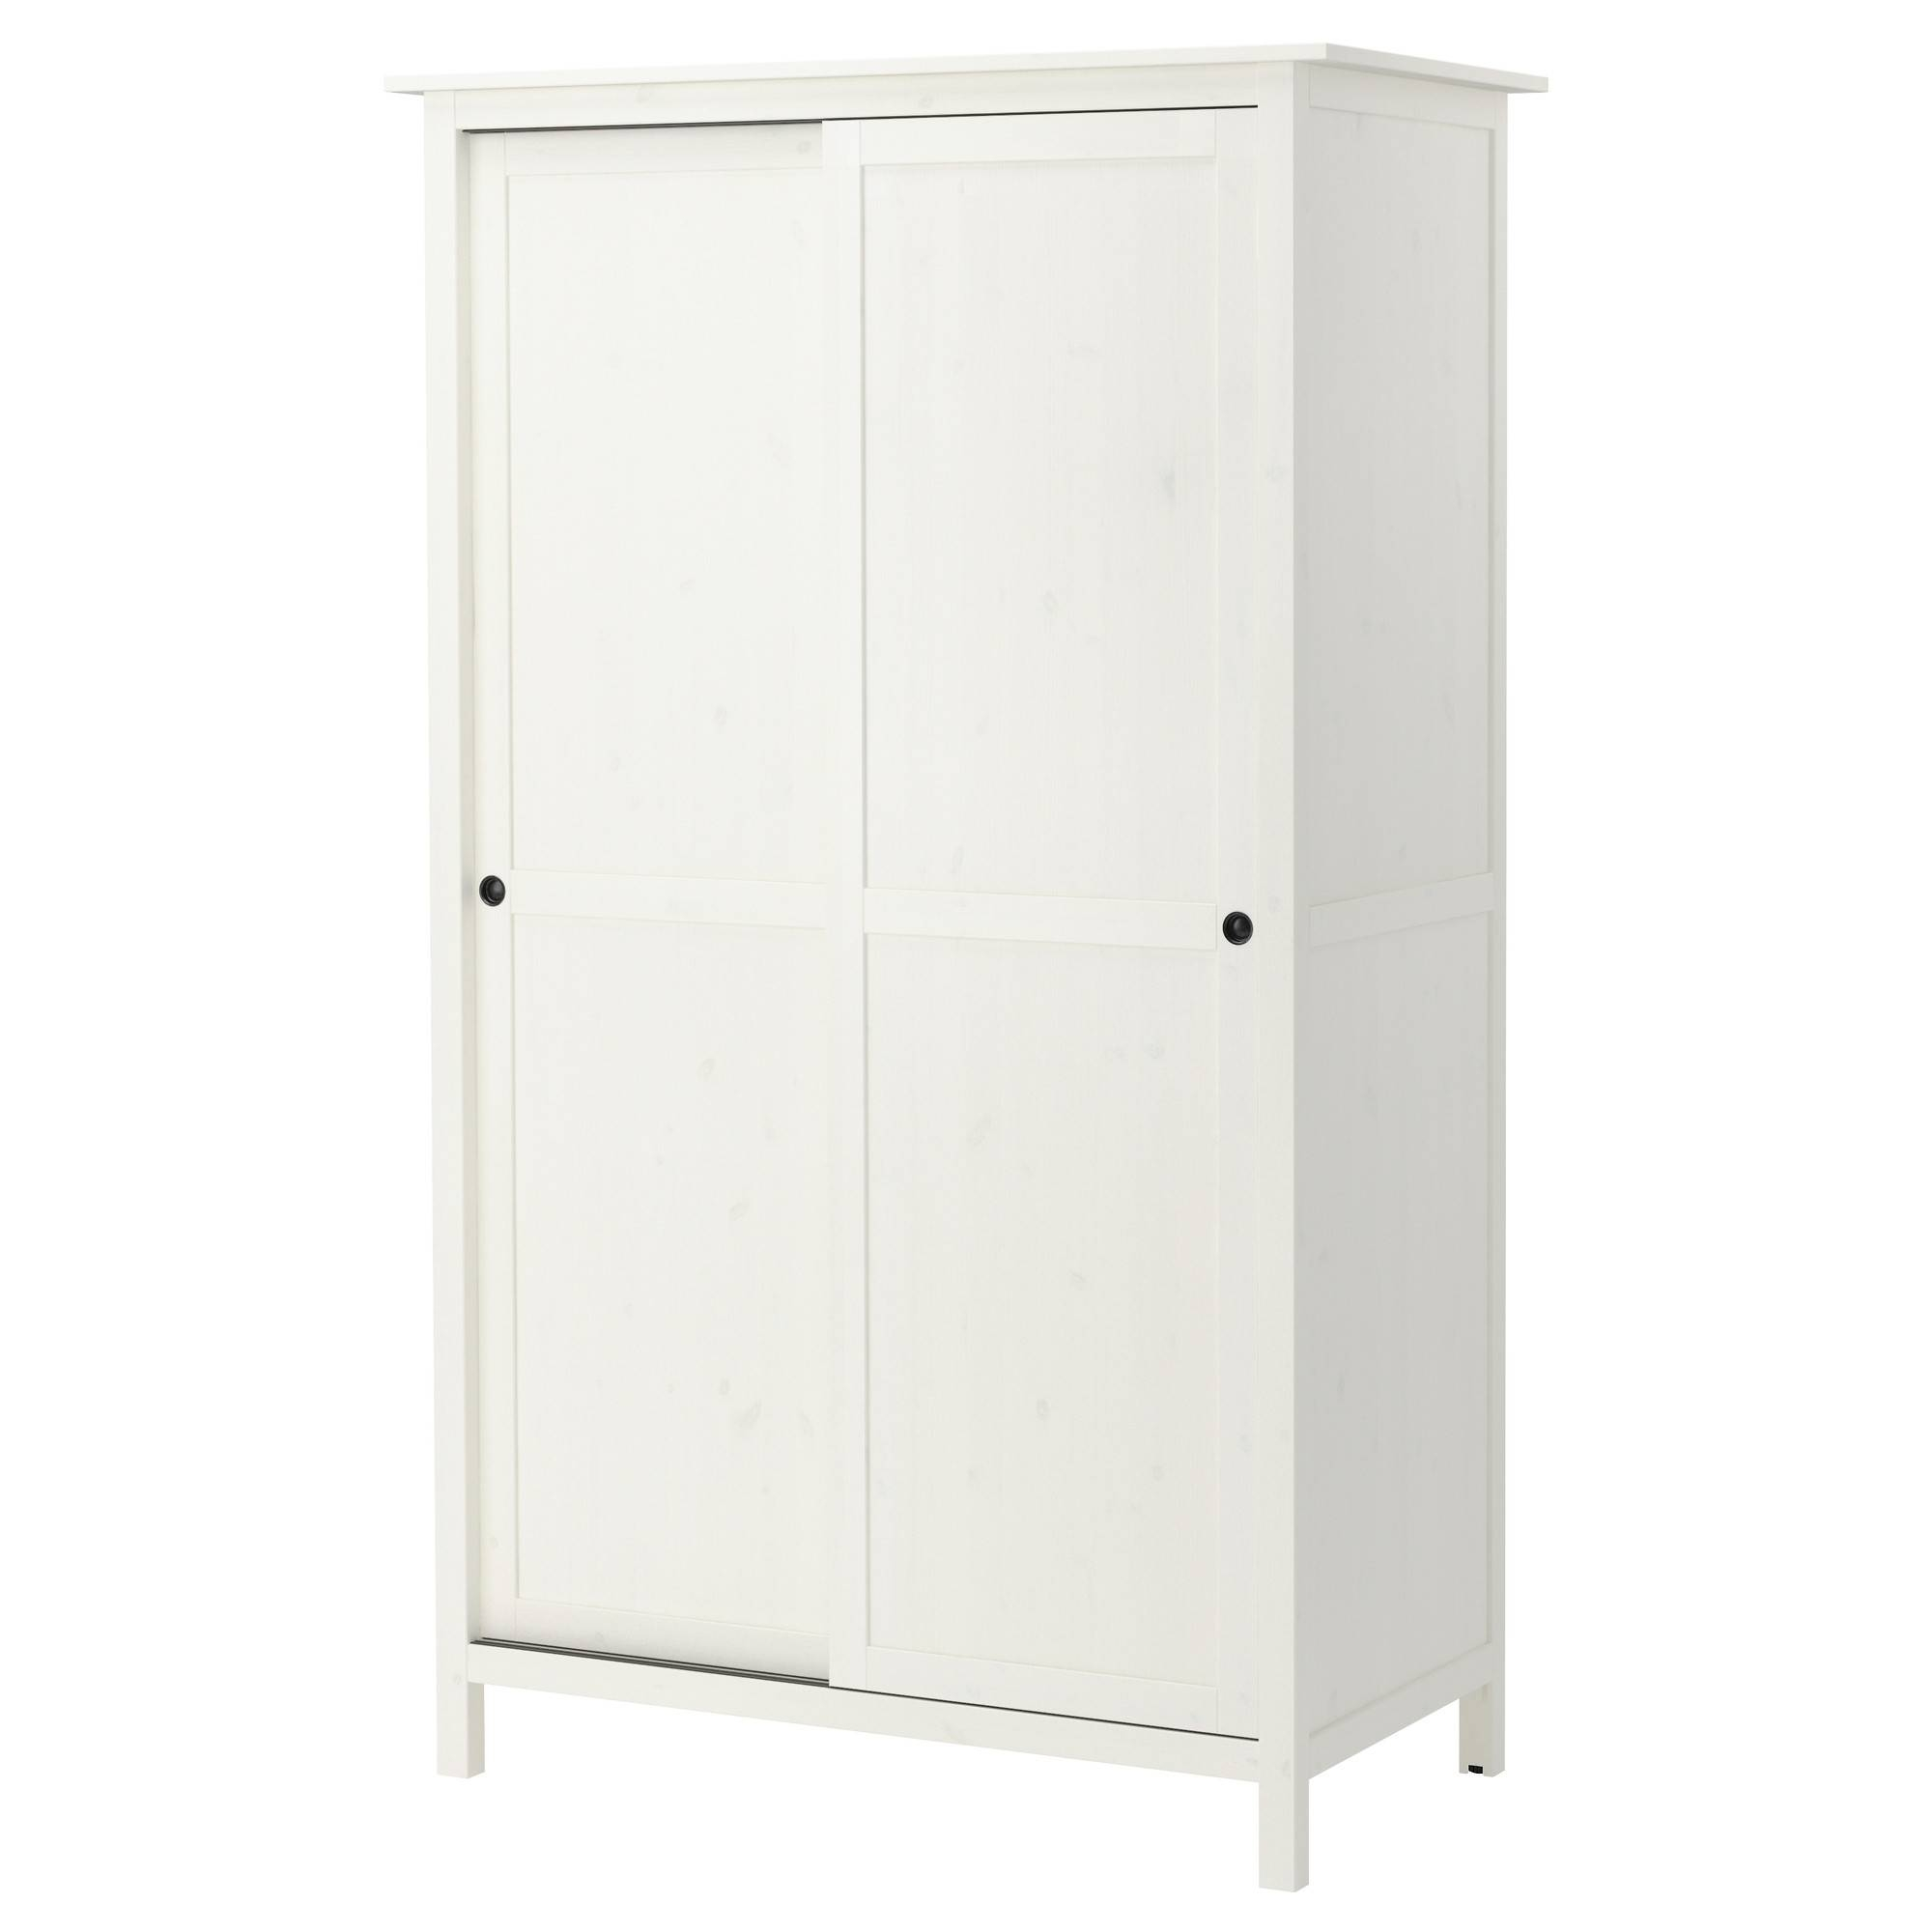 Wardrobes | Ikea for White Wooden Wardrobes (Image 13 of 15)